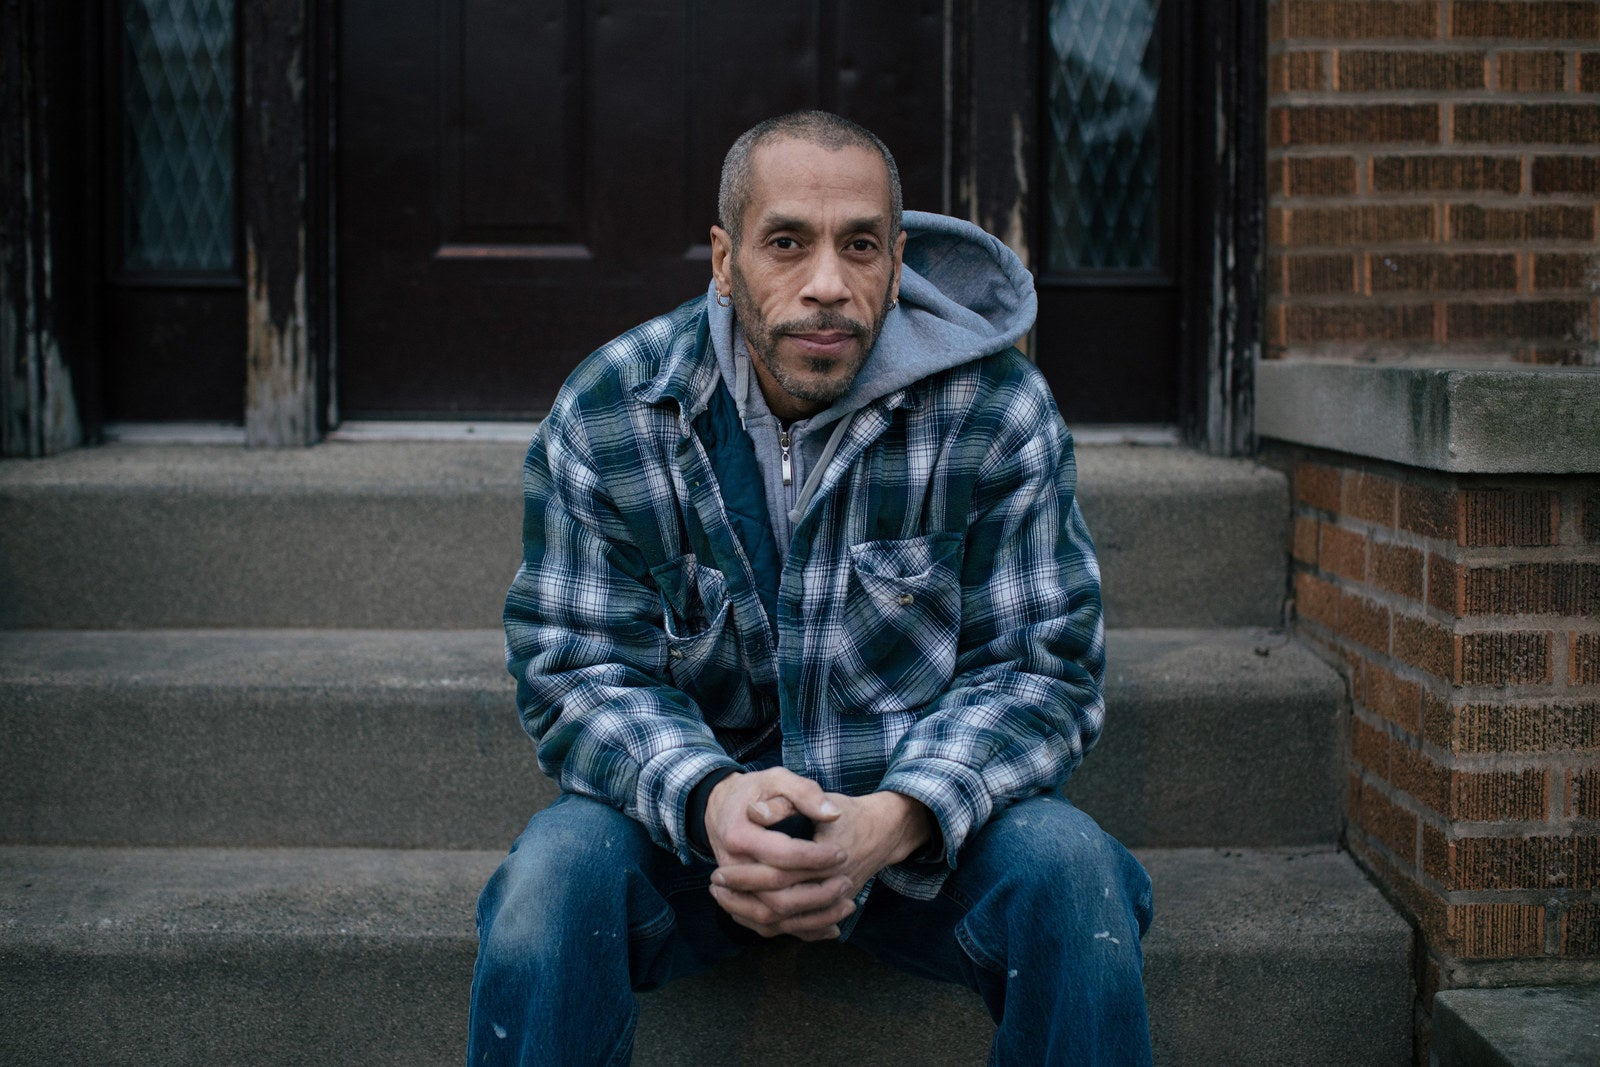 He Says He Helped Frame Five Men For Murder And Chicago Prosecutors Were In On It